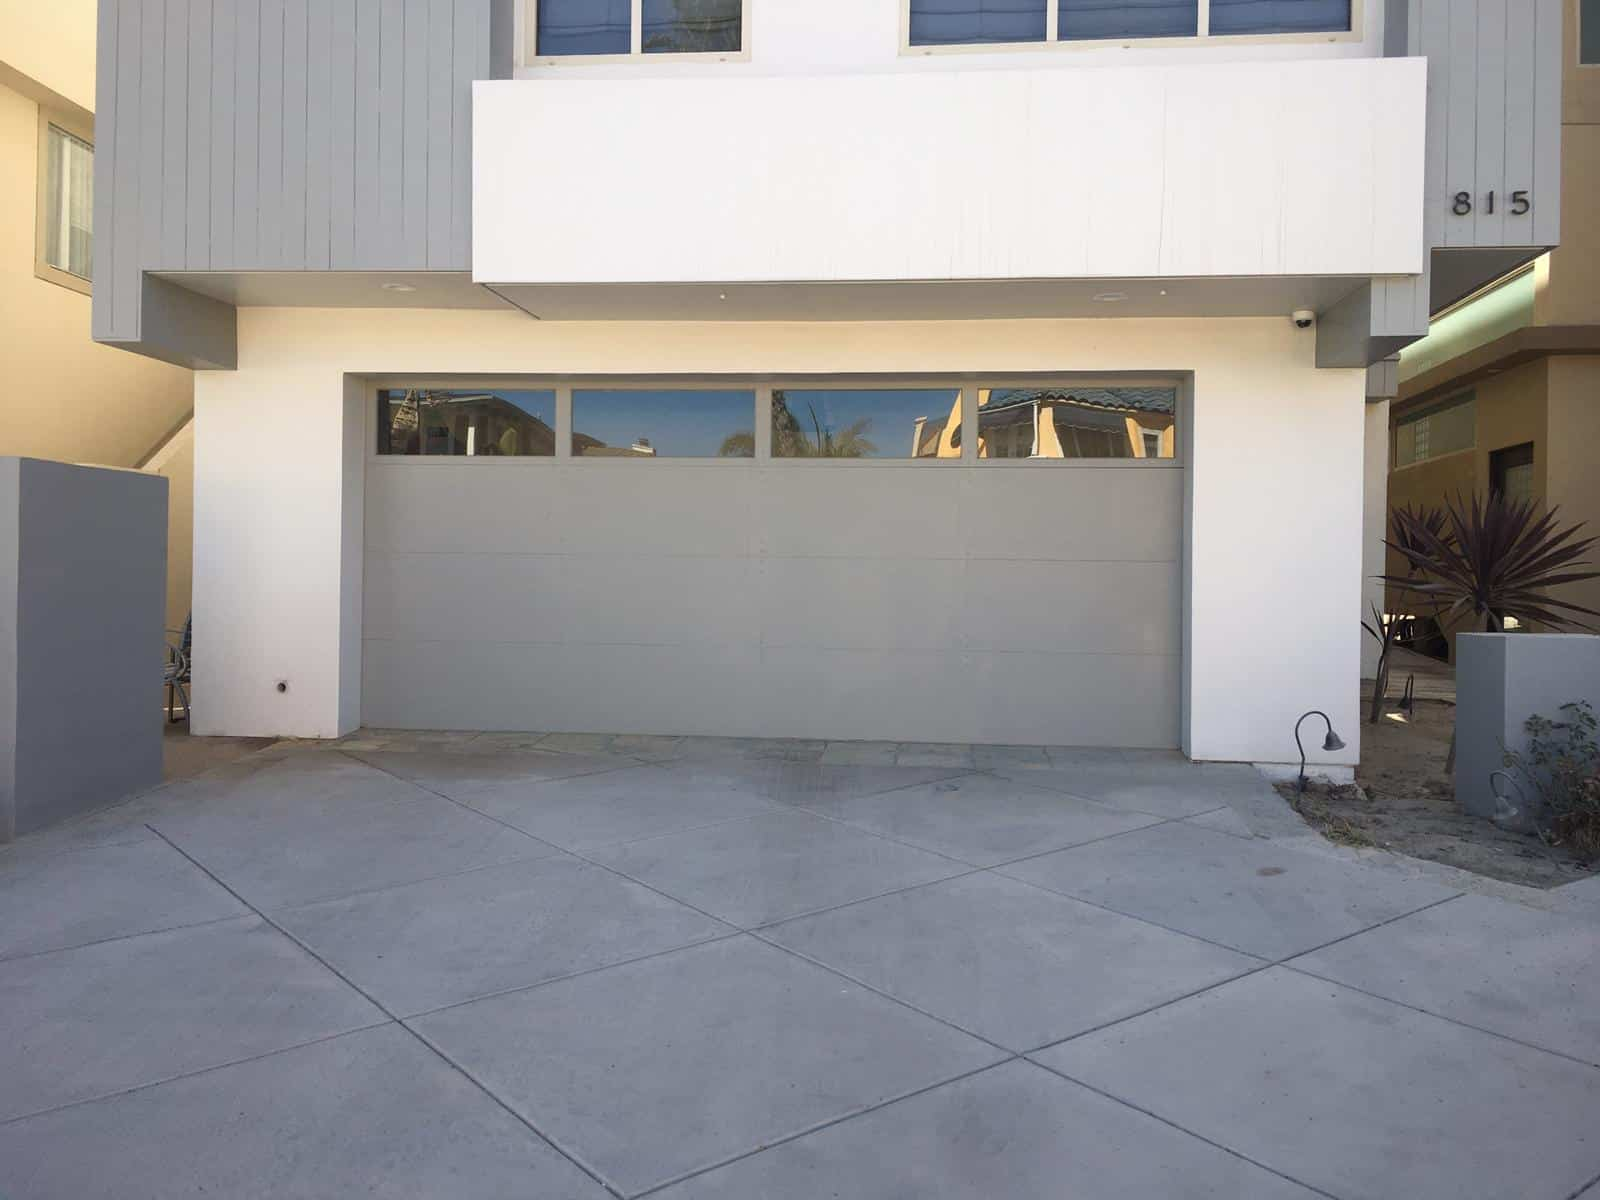 Ross CA Garage Door Repair & Replacement